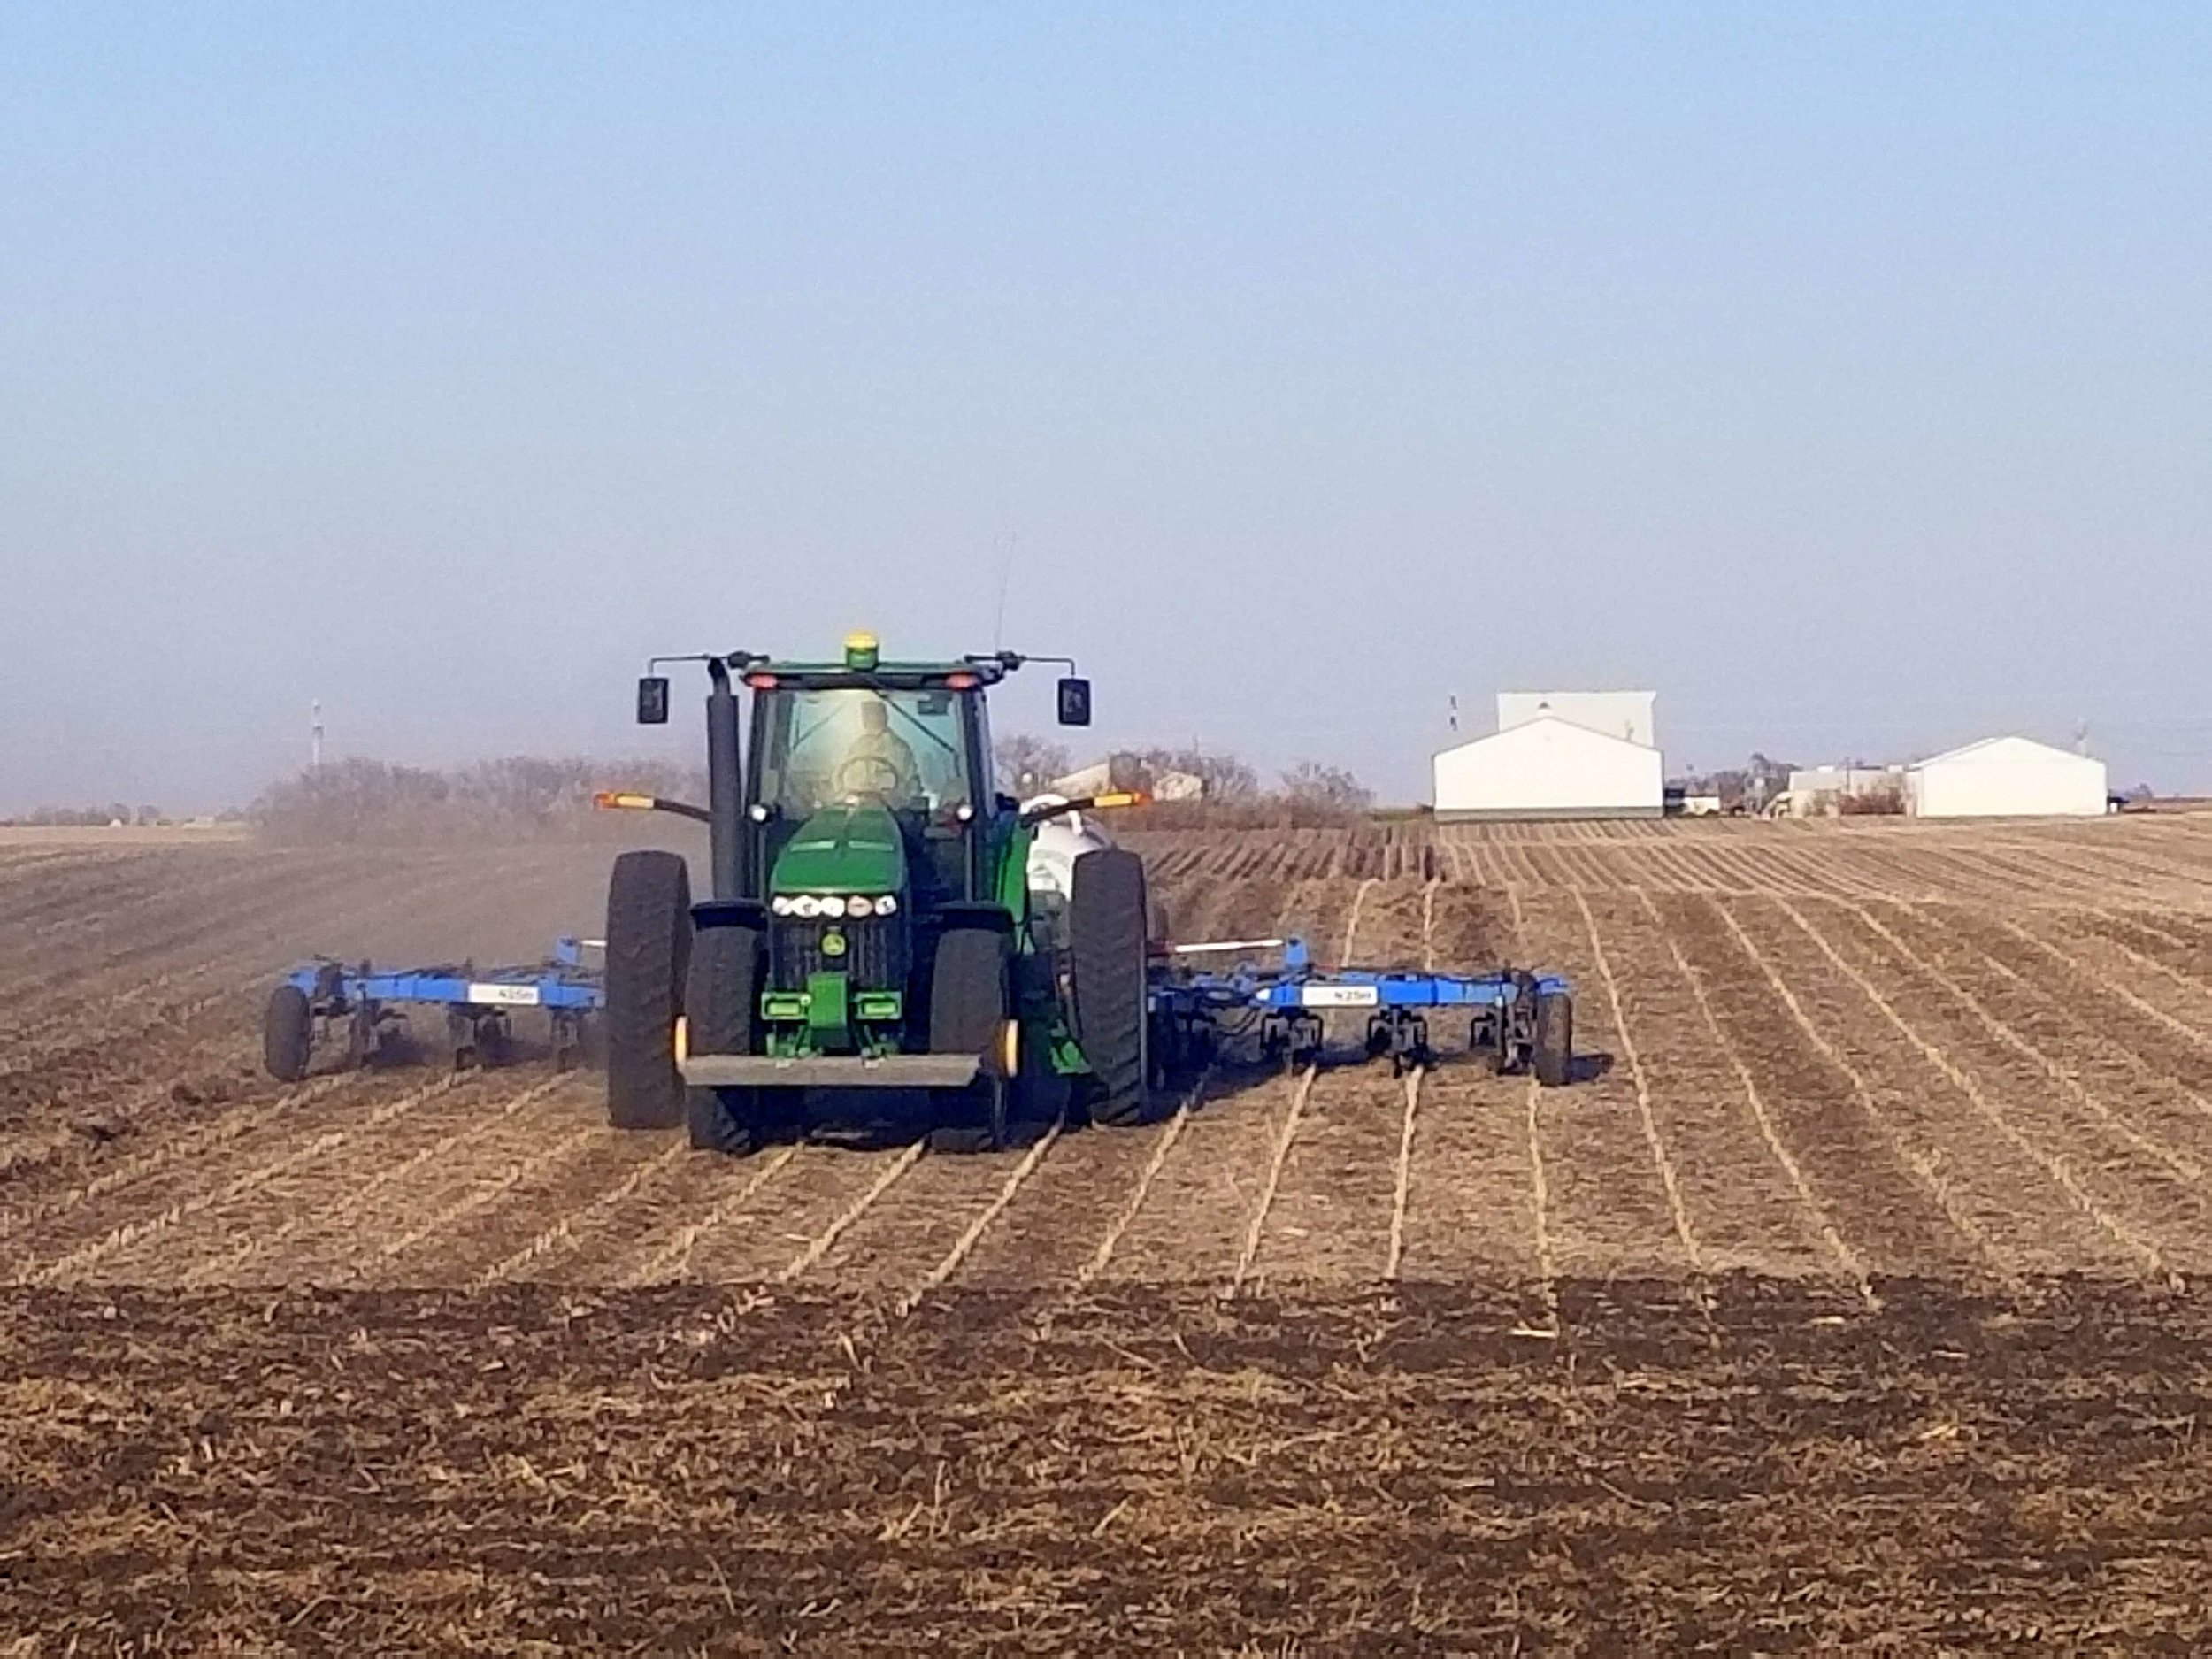 Darcy and her brother Jason are busy applying nitrogen fertilizer to help feed the 2018 crop.